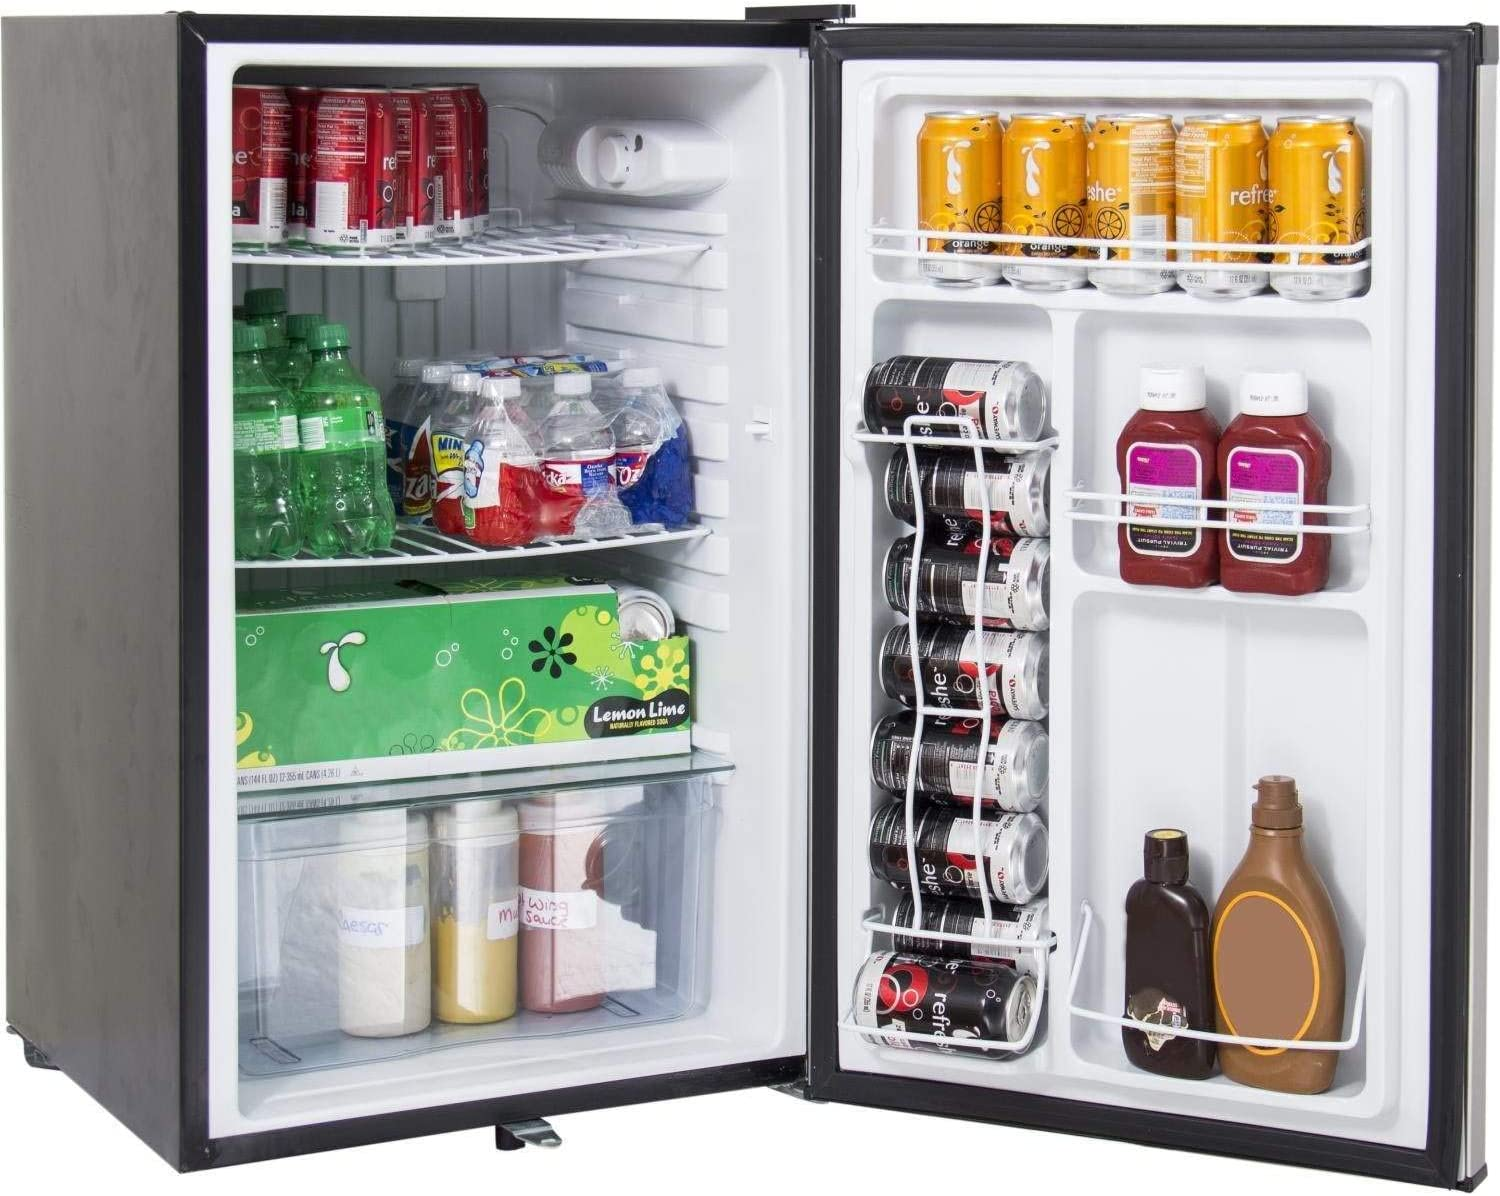 71%2BTpXYCioL. AC SL1500 The Best Outdoor Beverage Refrigerator for Garage Reviews